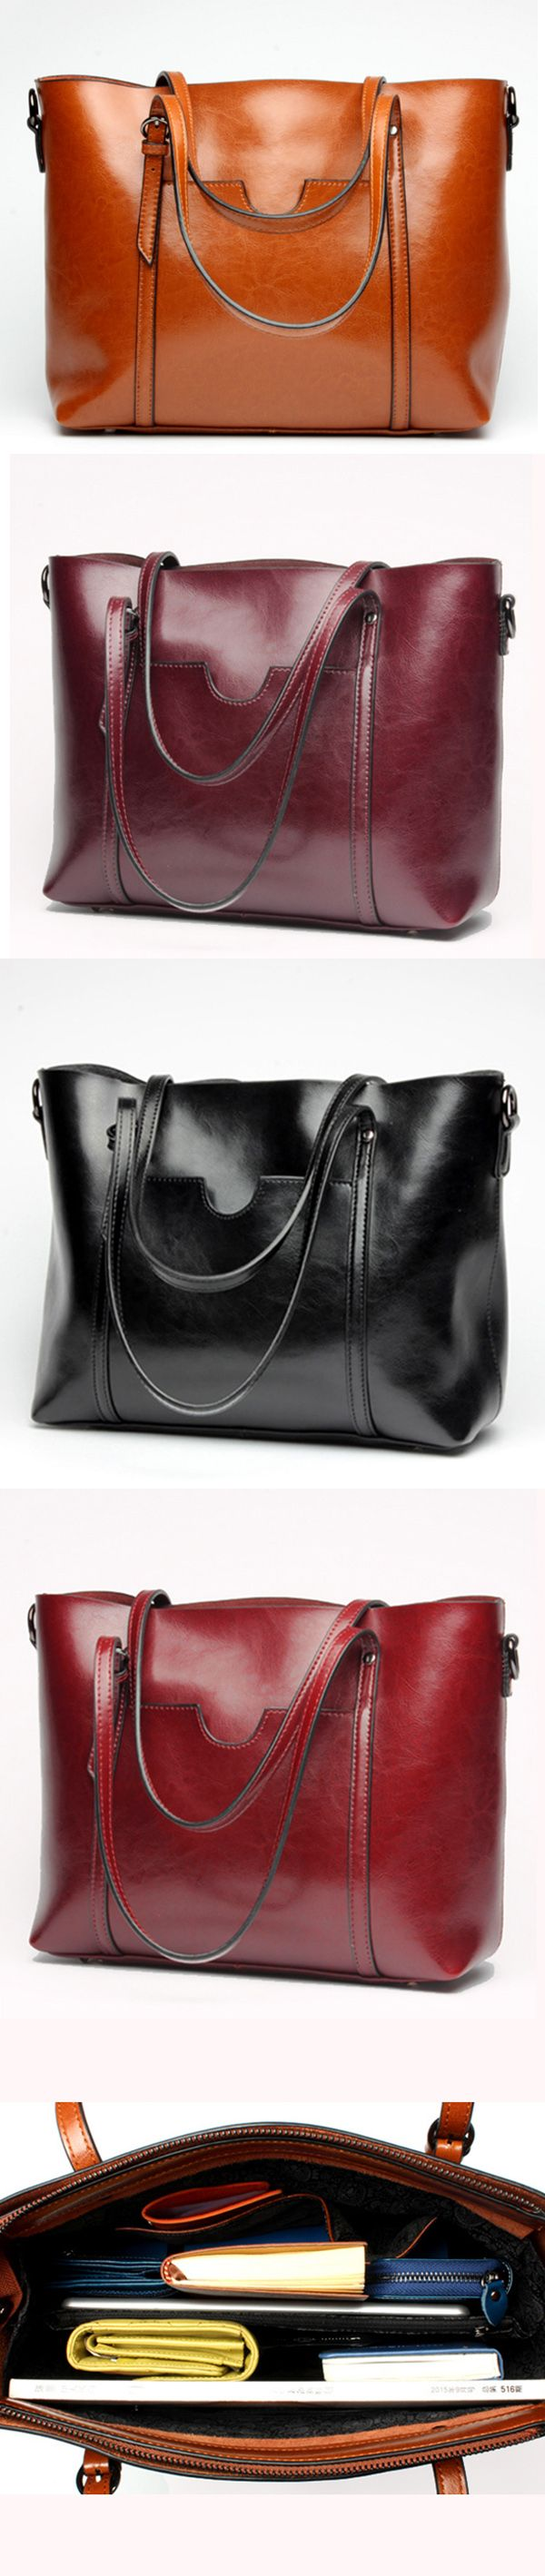 US$25.89  Women Oil Leather Tote Handbags Casual Front Pockets Crossbody Bags Shoulder Bags